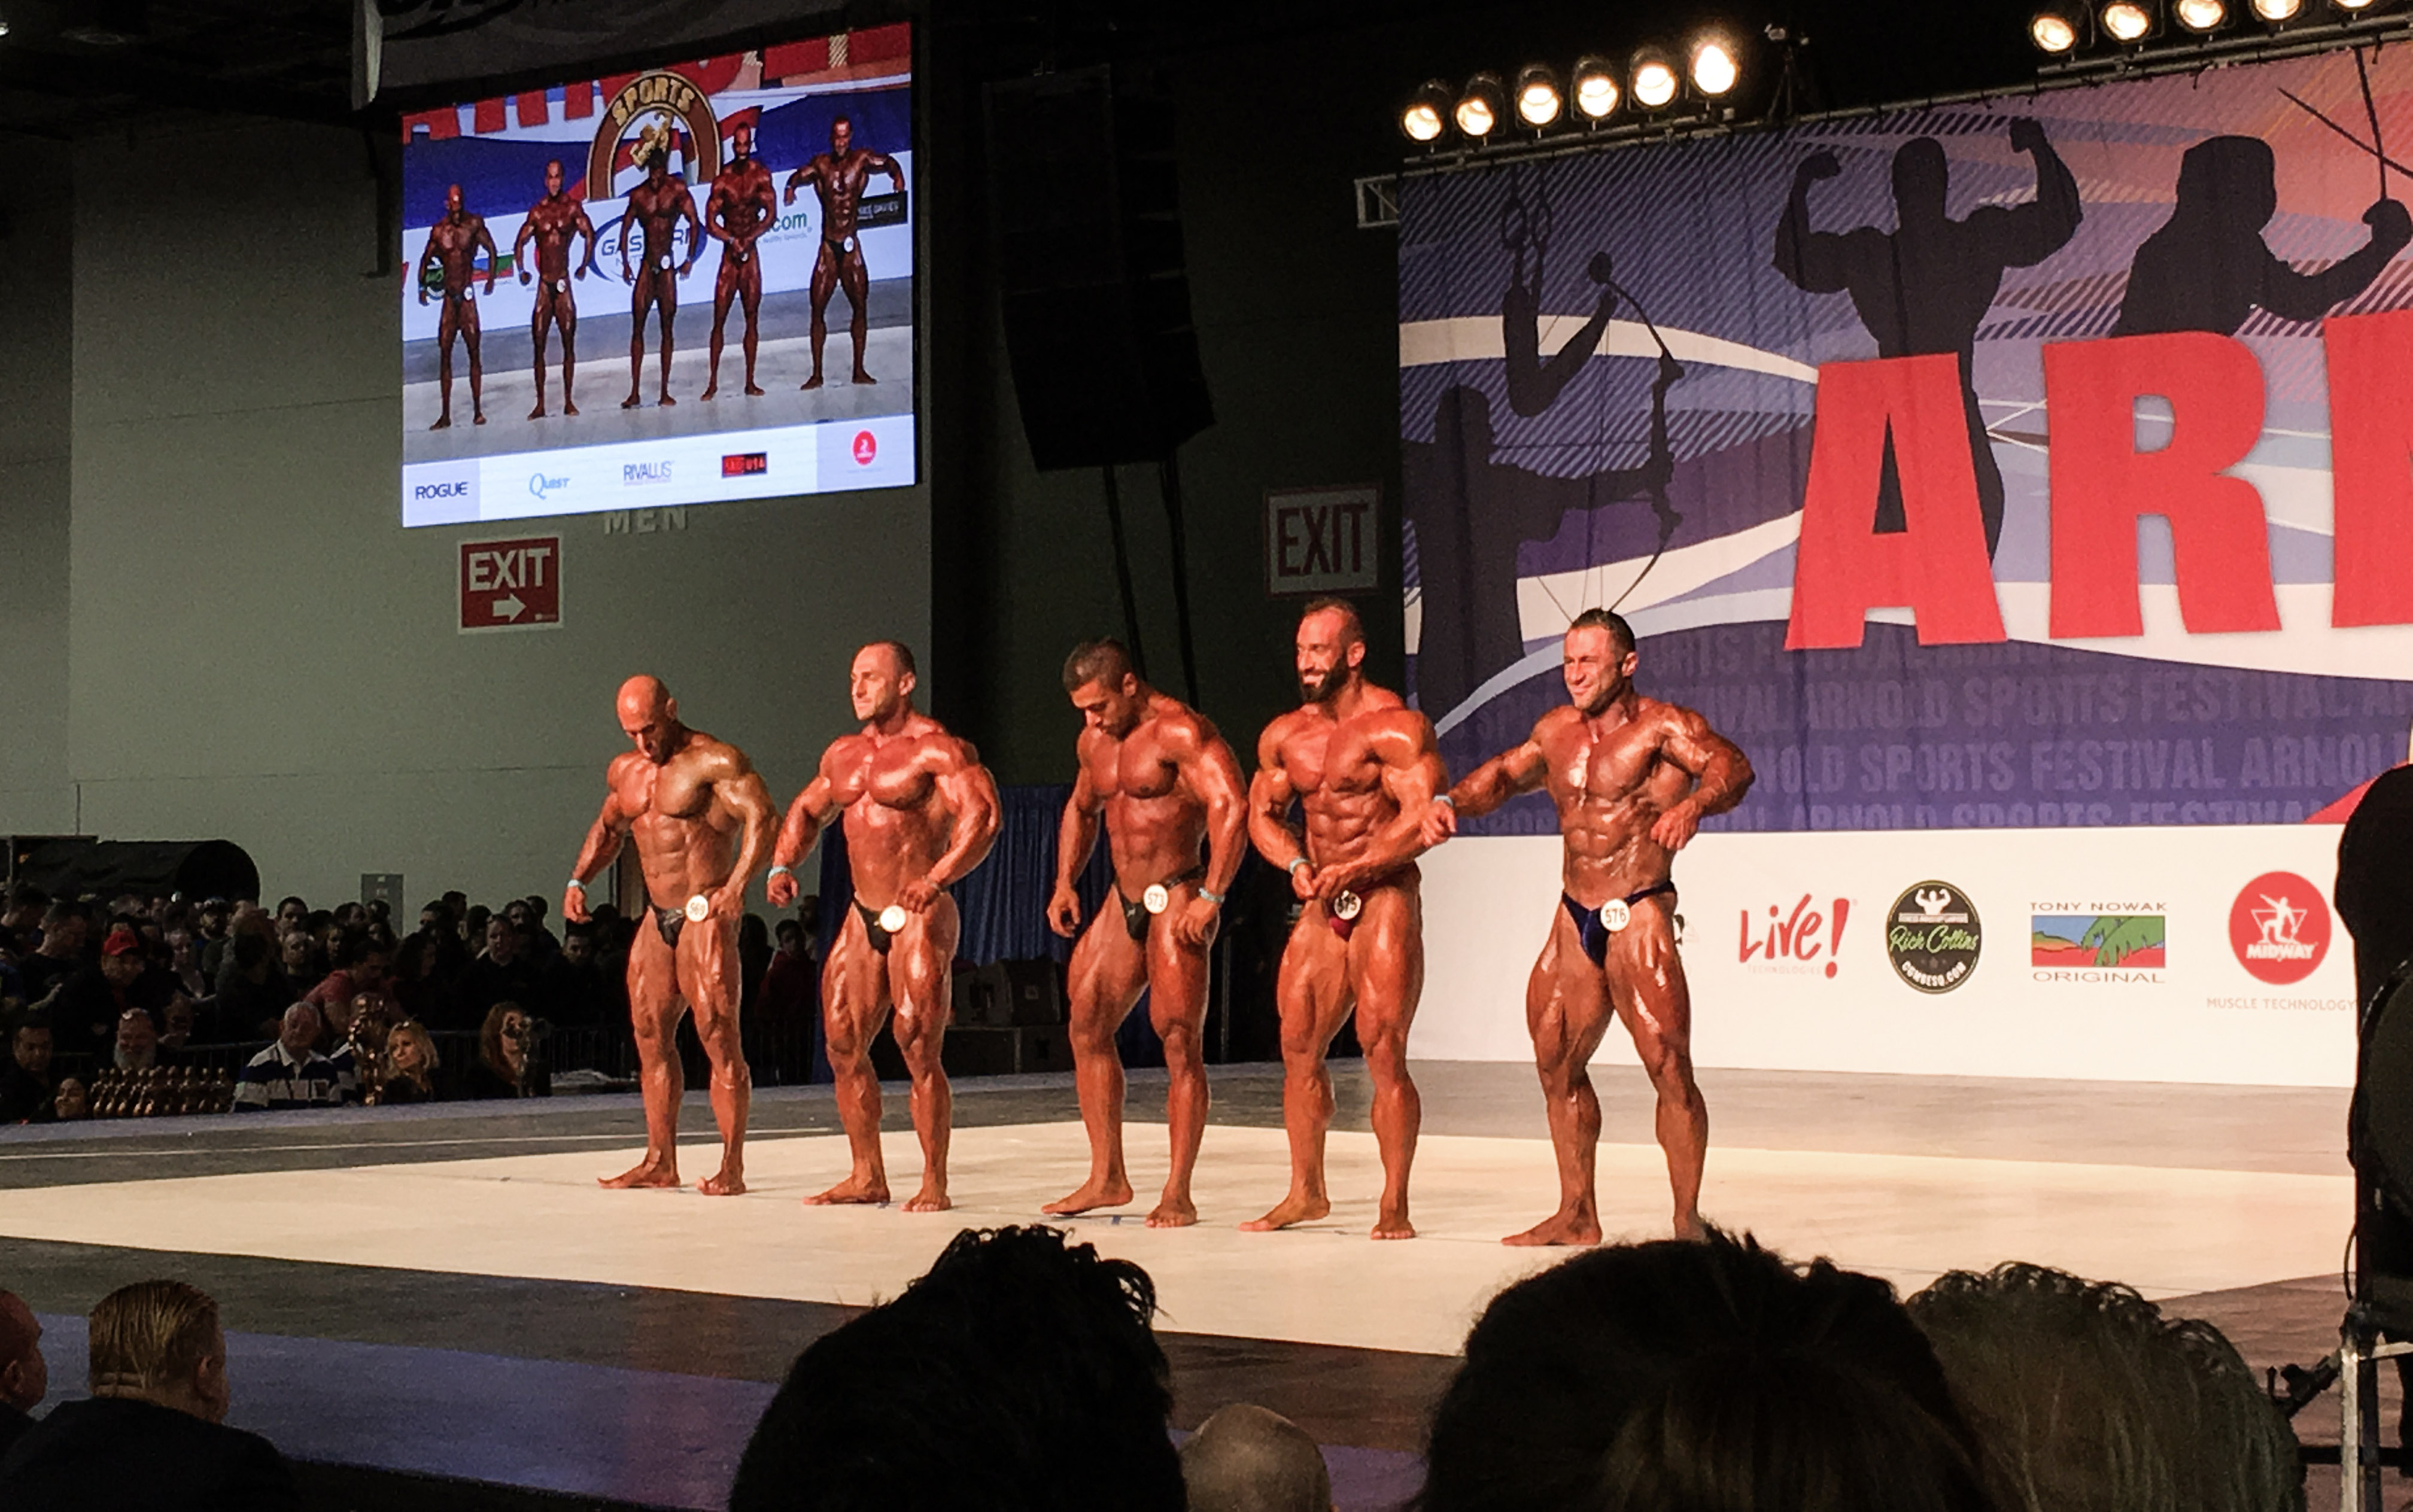 Body Builders posing for the crowd.